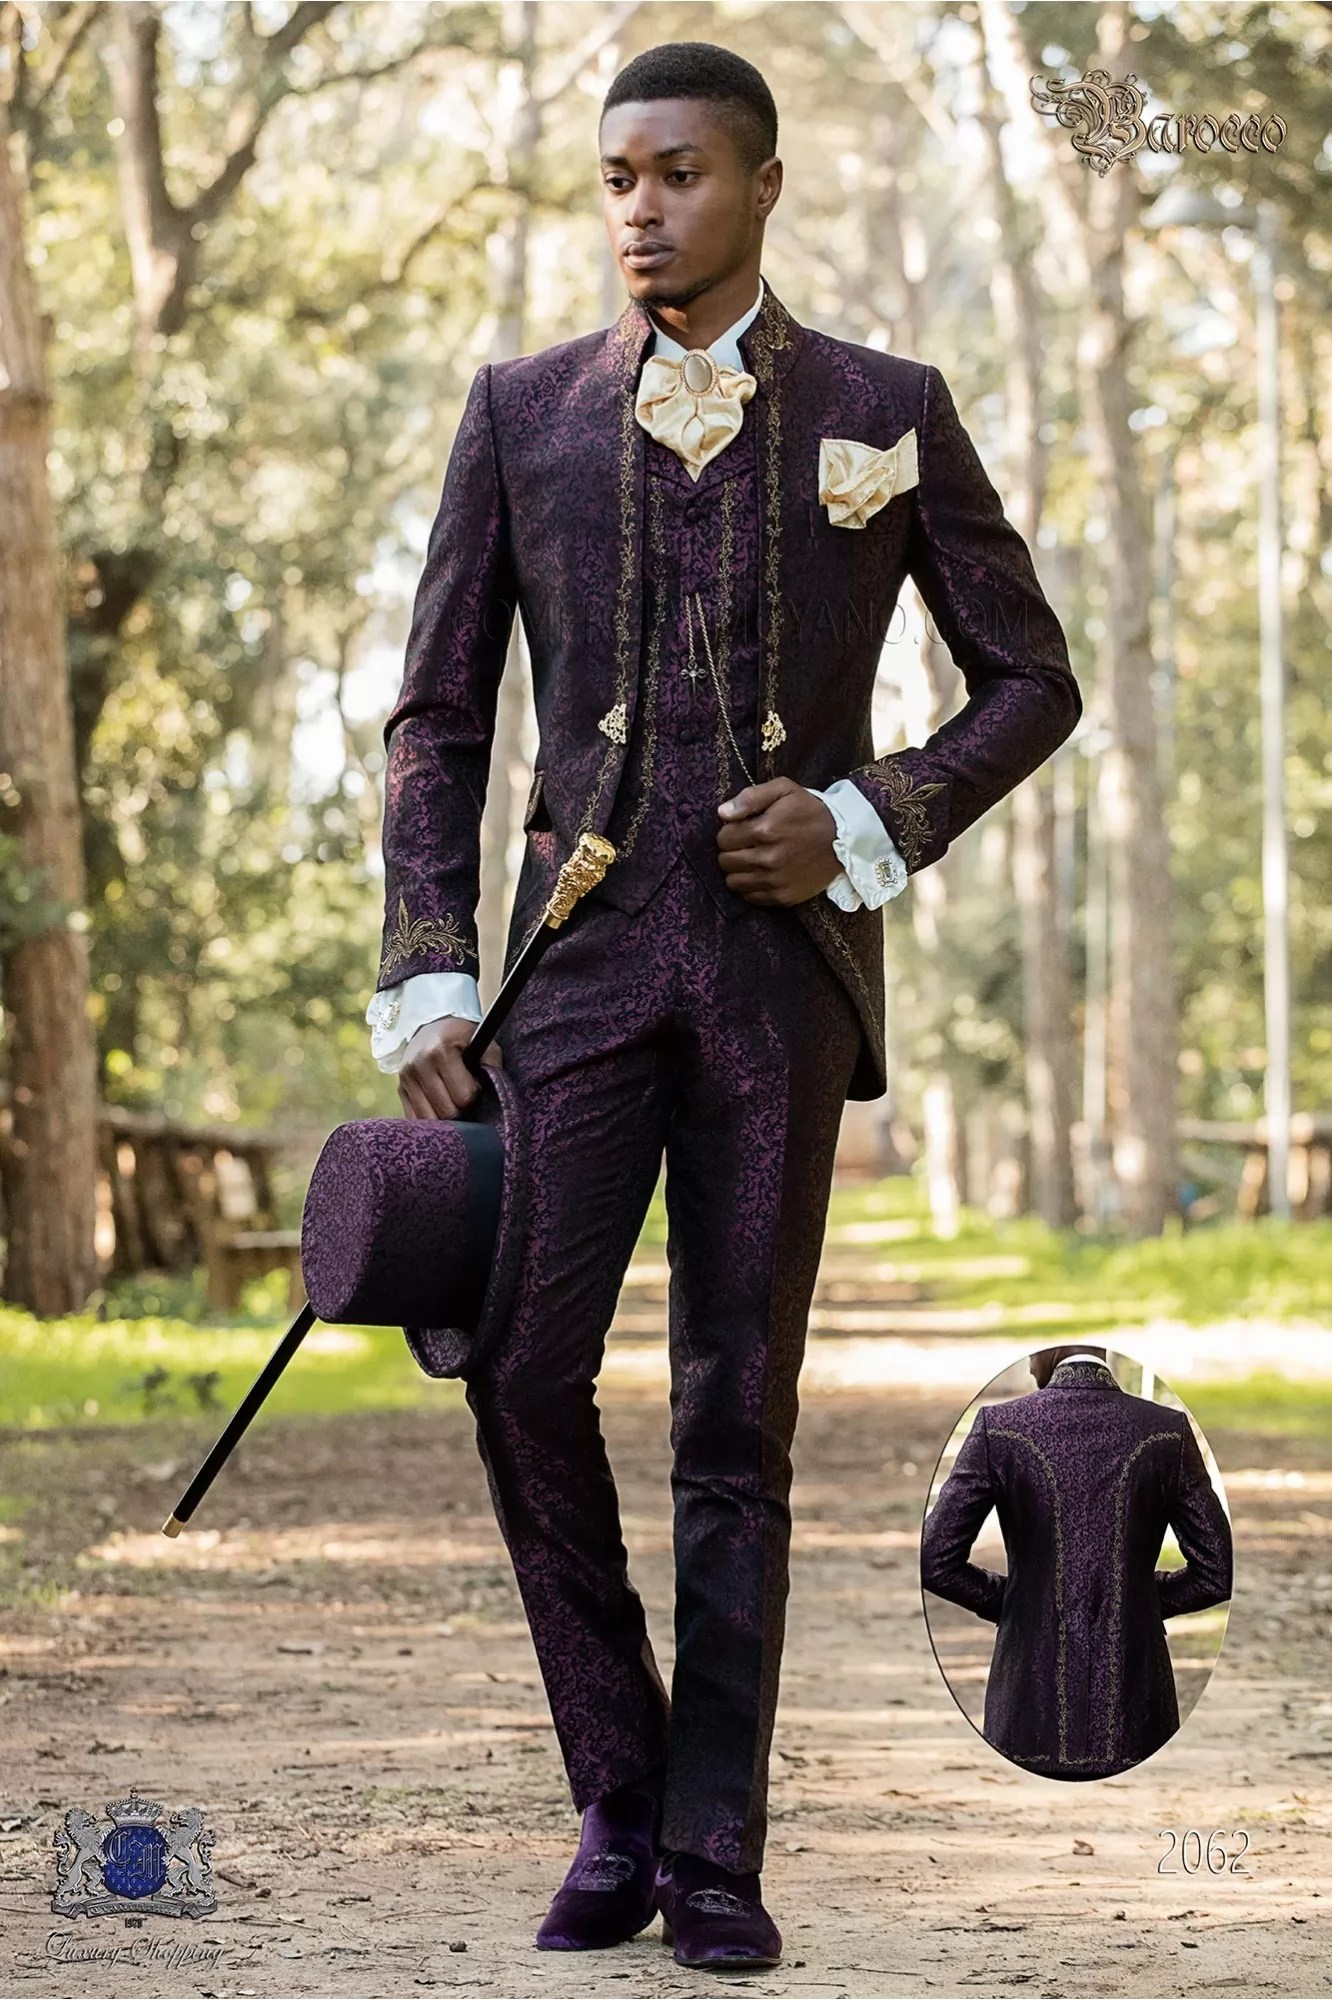 Bräutigam Vintage Look Baroque Groom Suit Vintage Napoleon Collar Frock Coat In Purple Jacquard Fabric With Golden Embroidery And Crystal Clasp